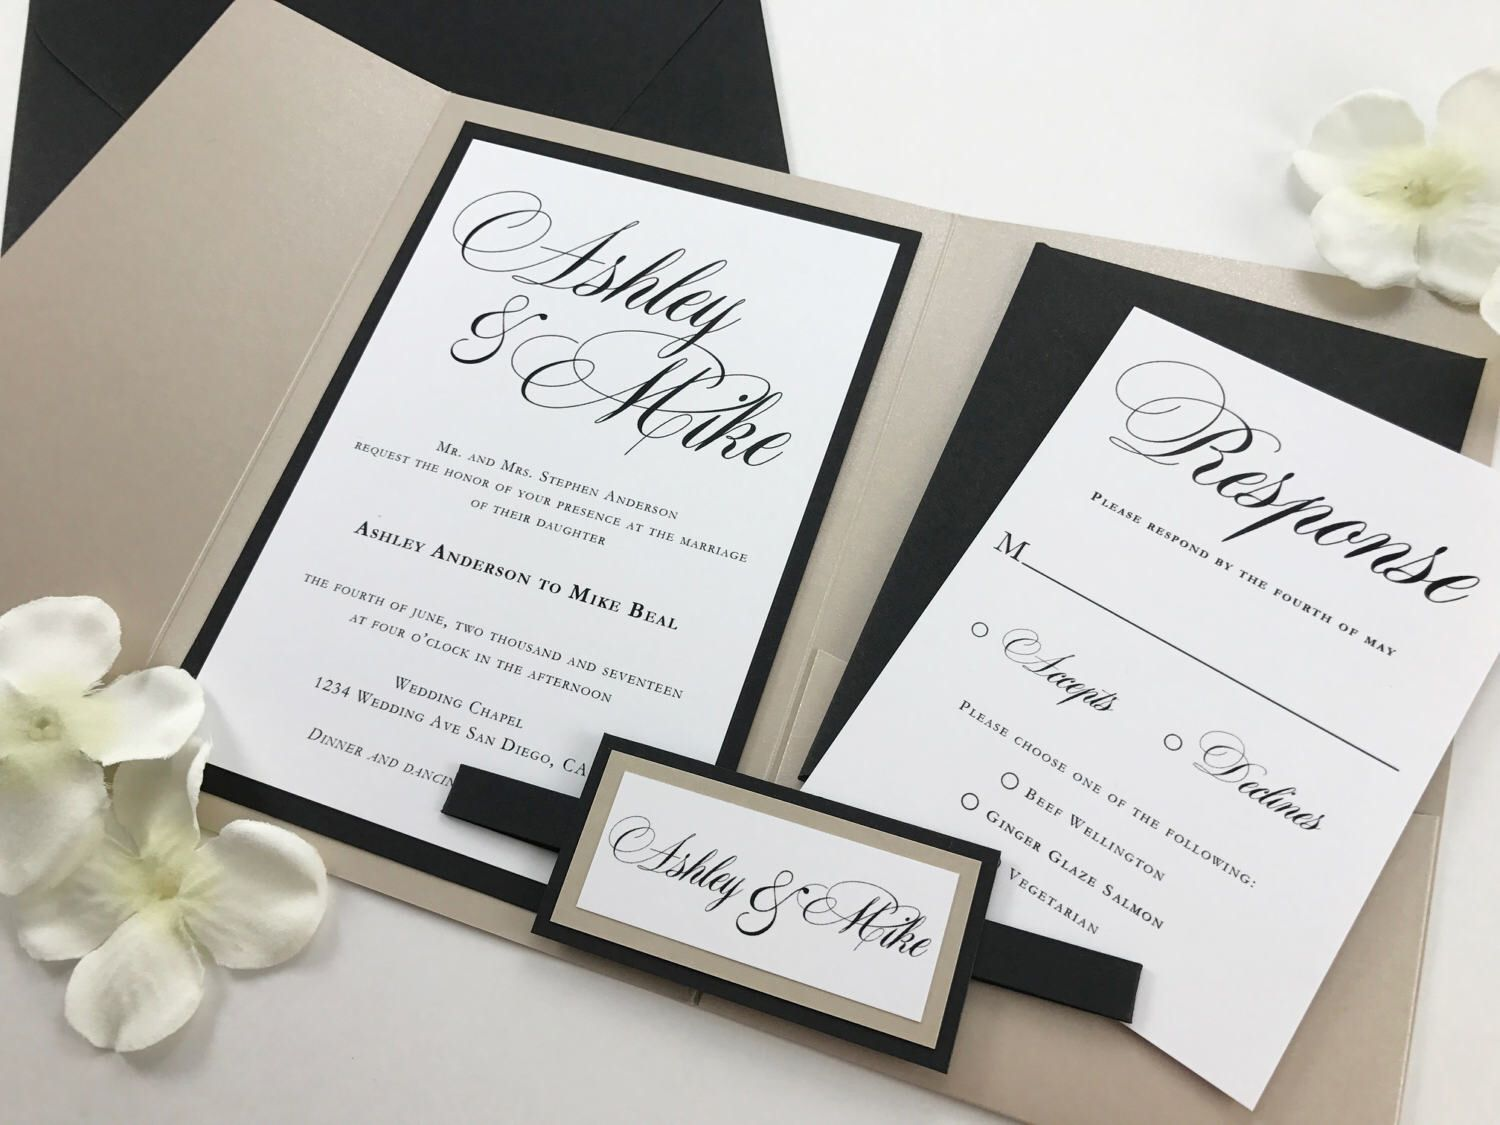 Complete Ivory Cream and Black Pocket Invitations with RSVP Card ...